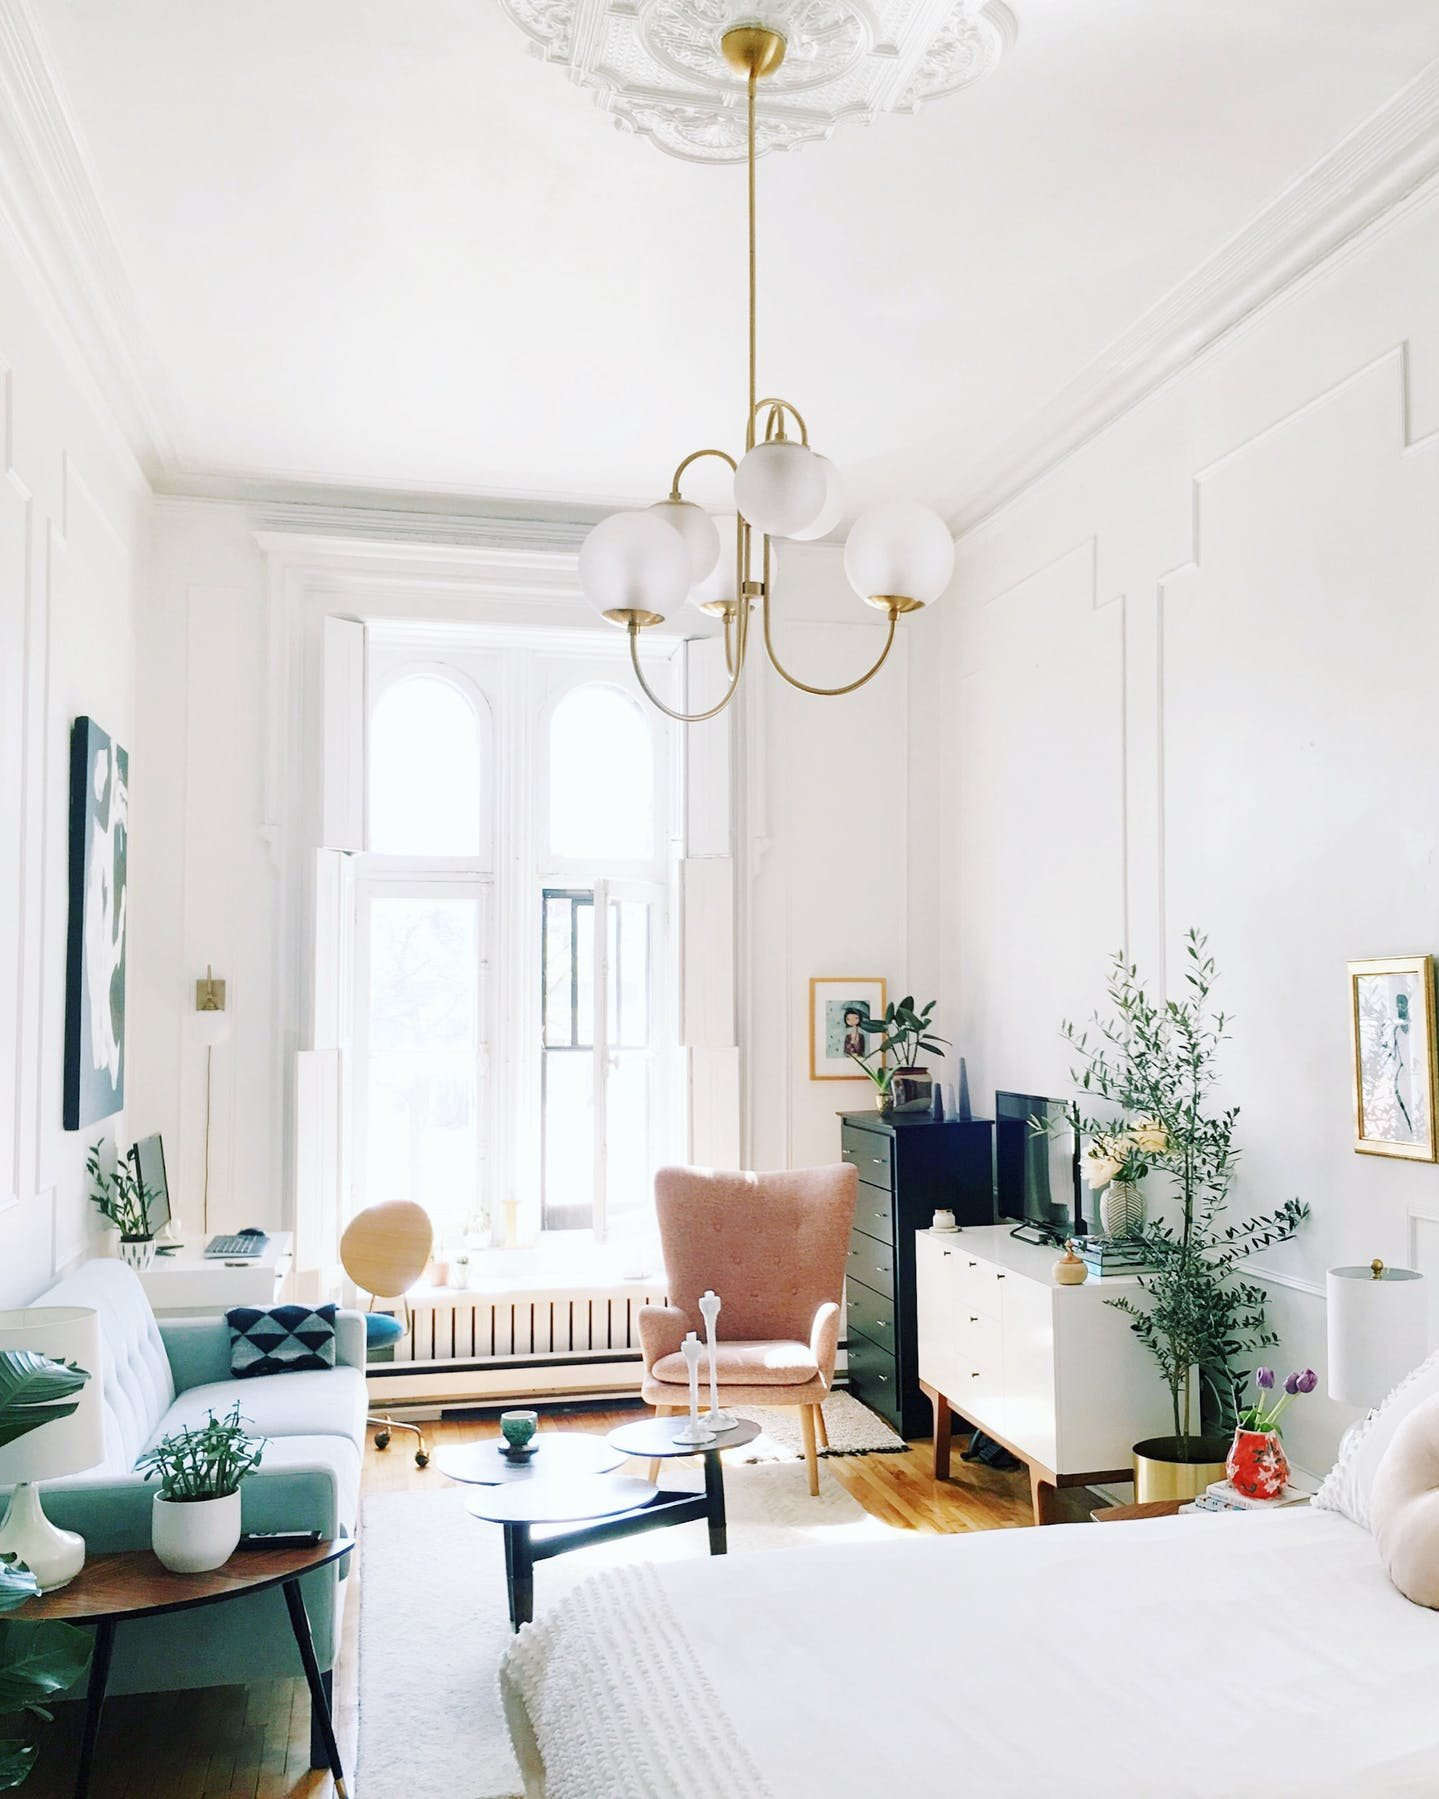 Small Apartment Living Room Decor 5 Small Apartment Decorating Tips to Make the Most Of Your